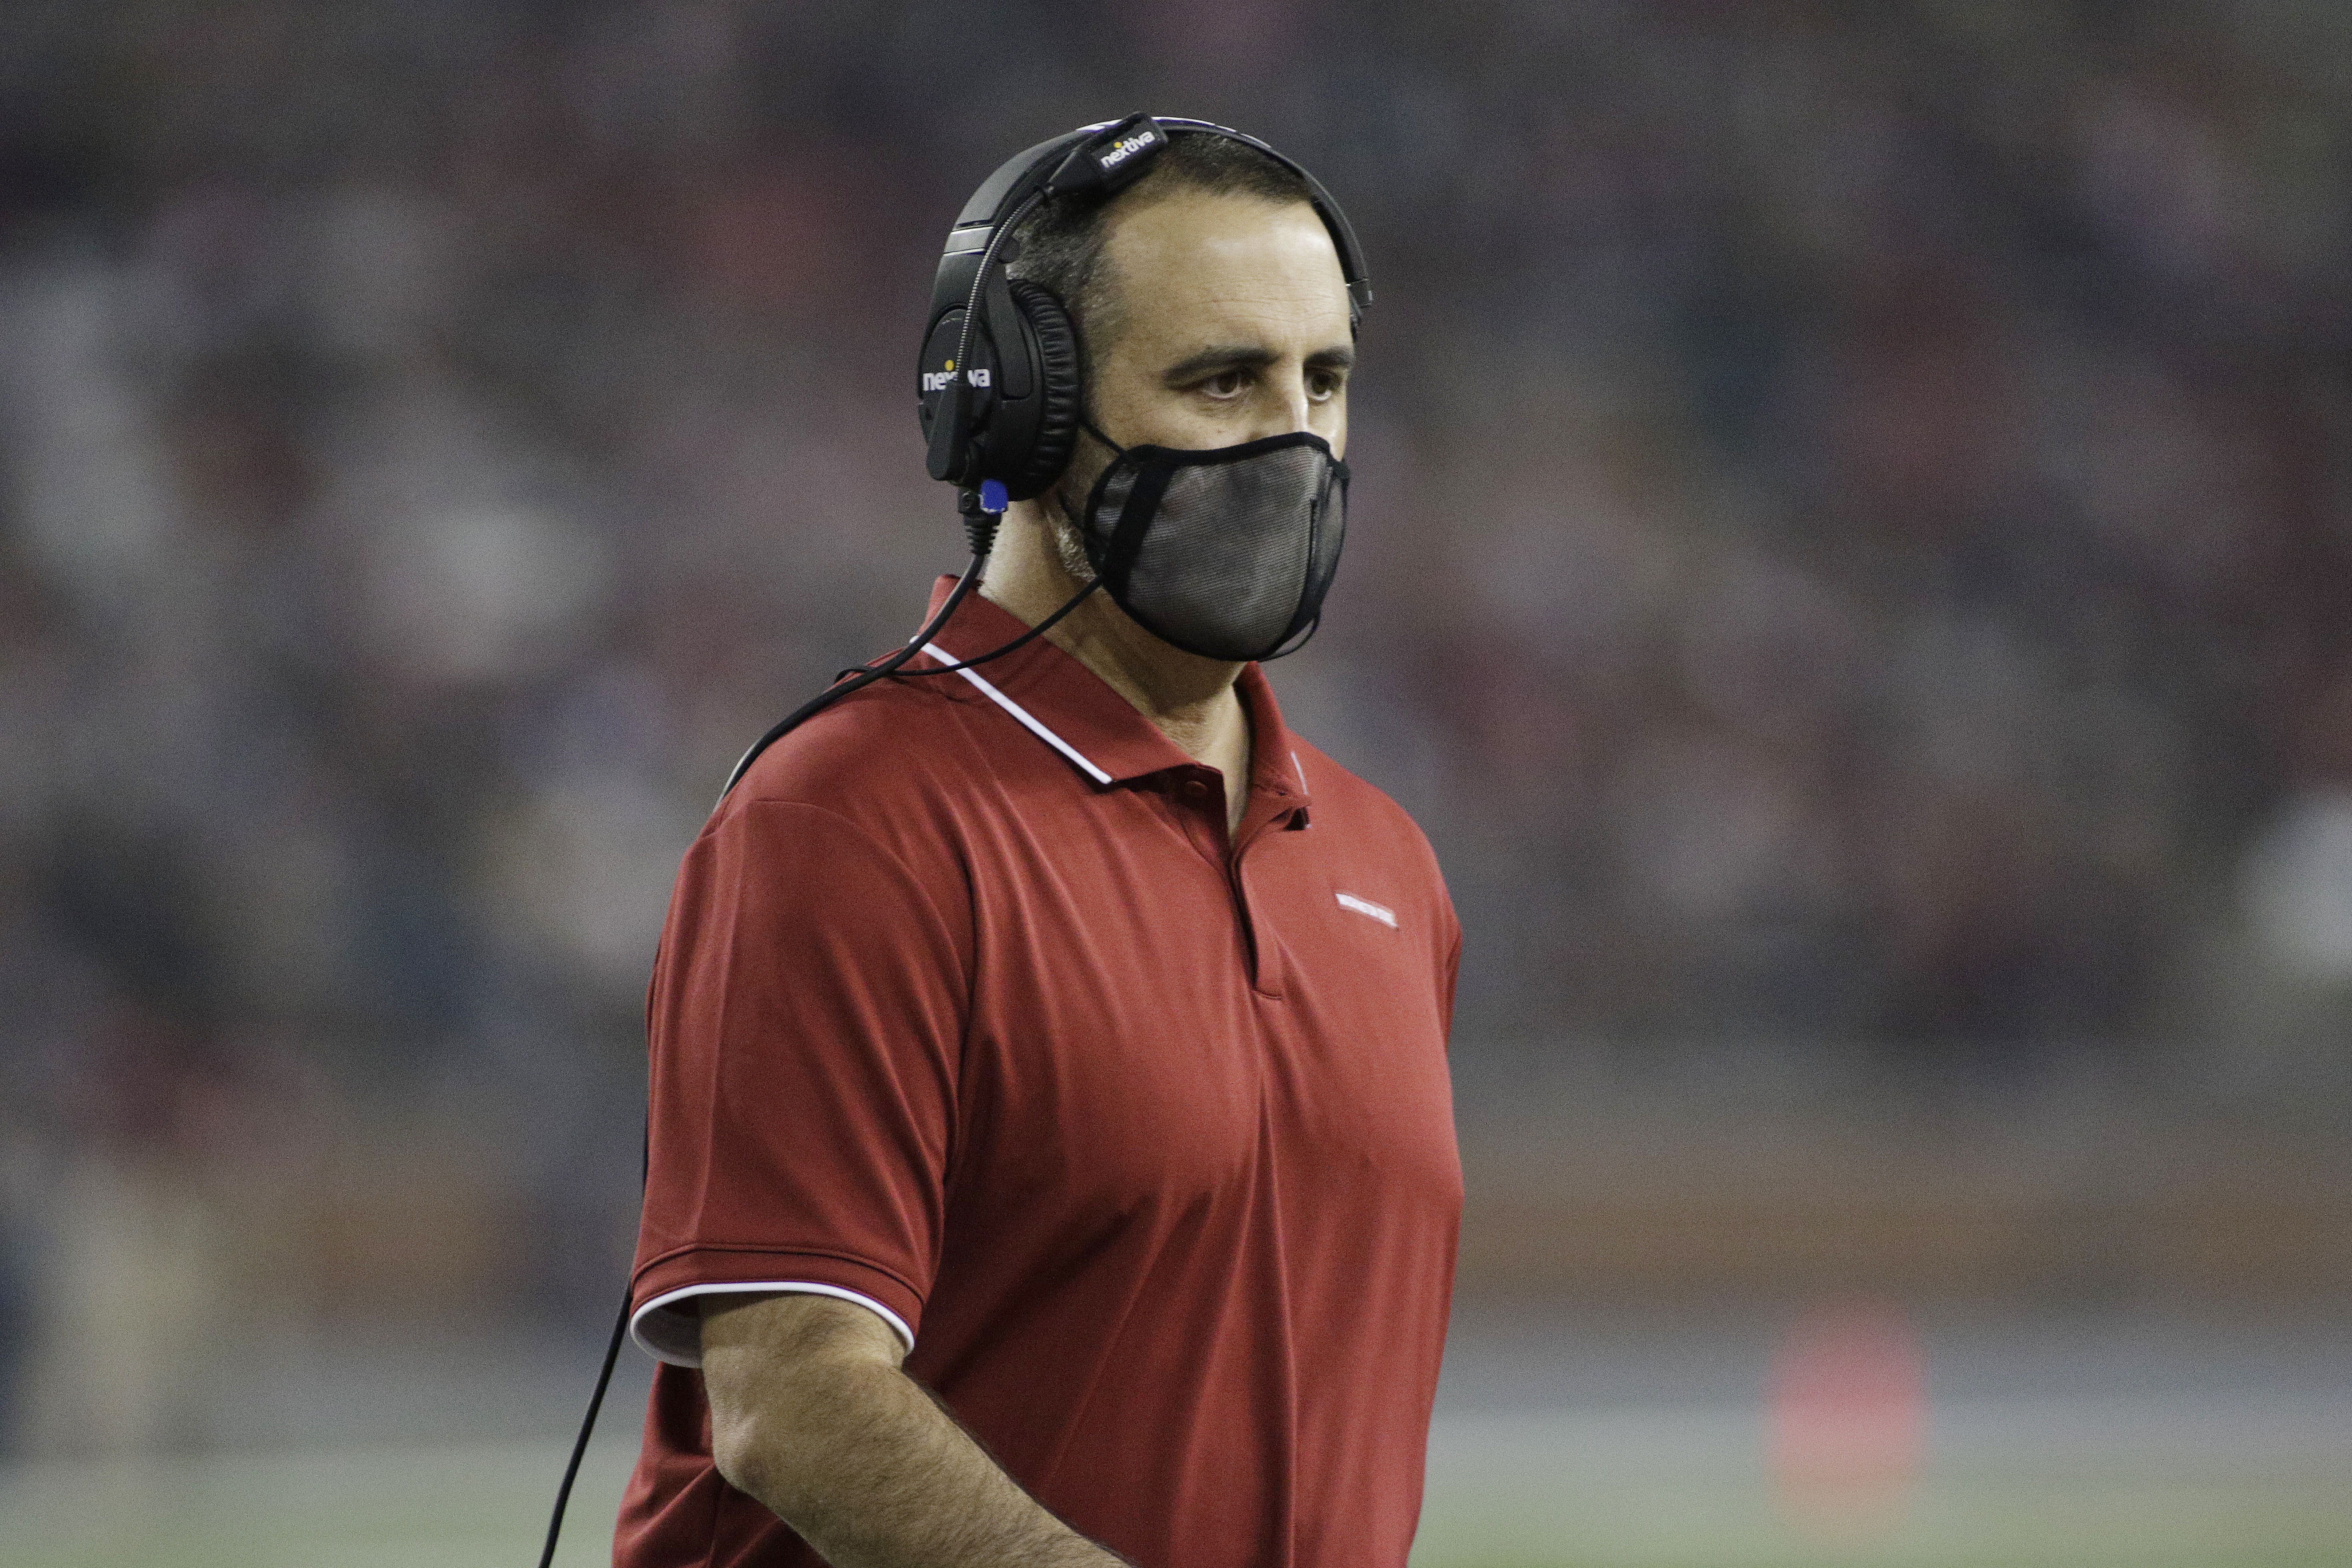 Washington State's Nick Rolovich Applied for COVID-19 Vaccine Religious Exemption thumbnail